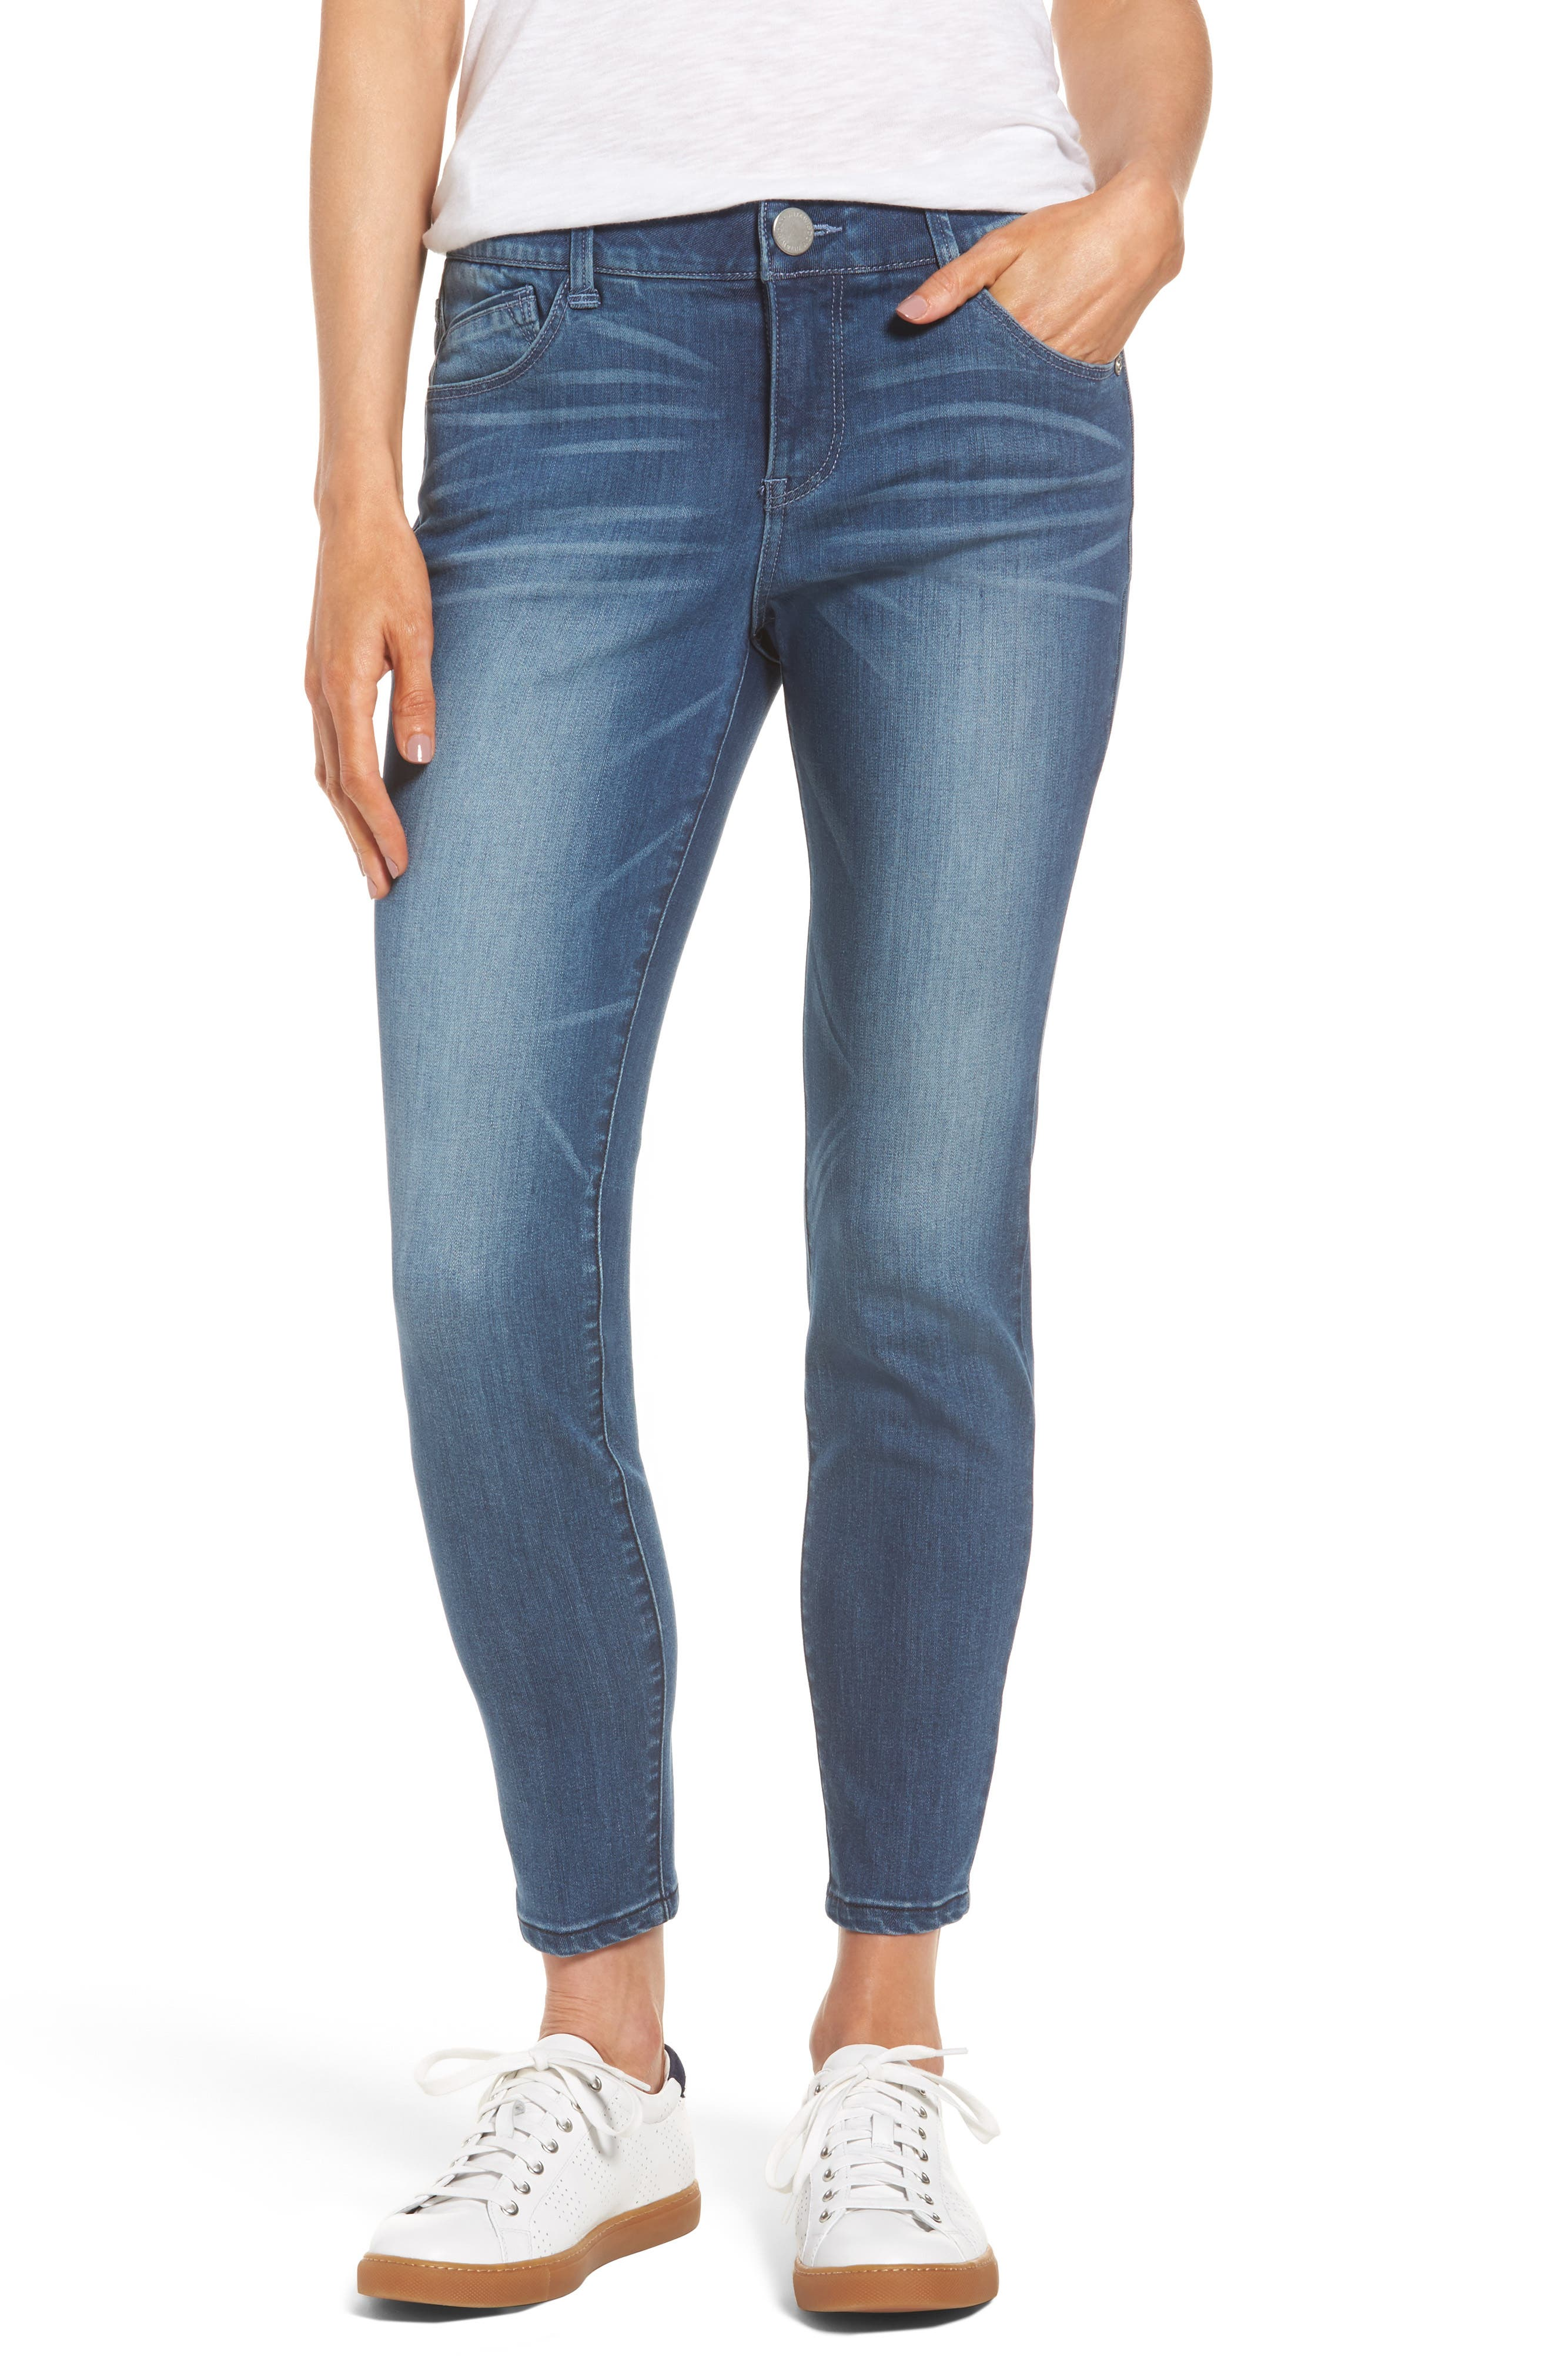 Alternate Image 1 Selected - Wit & Wisdom Ab-solution Stretch Ankle Skinny Jeans (Regular & Petite) (Nordstrom Exclusive)